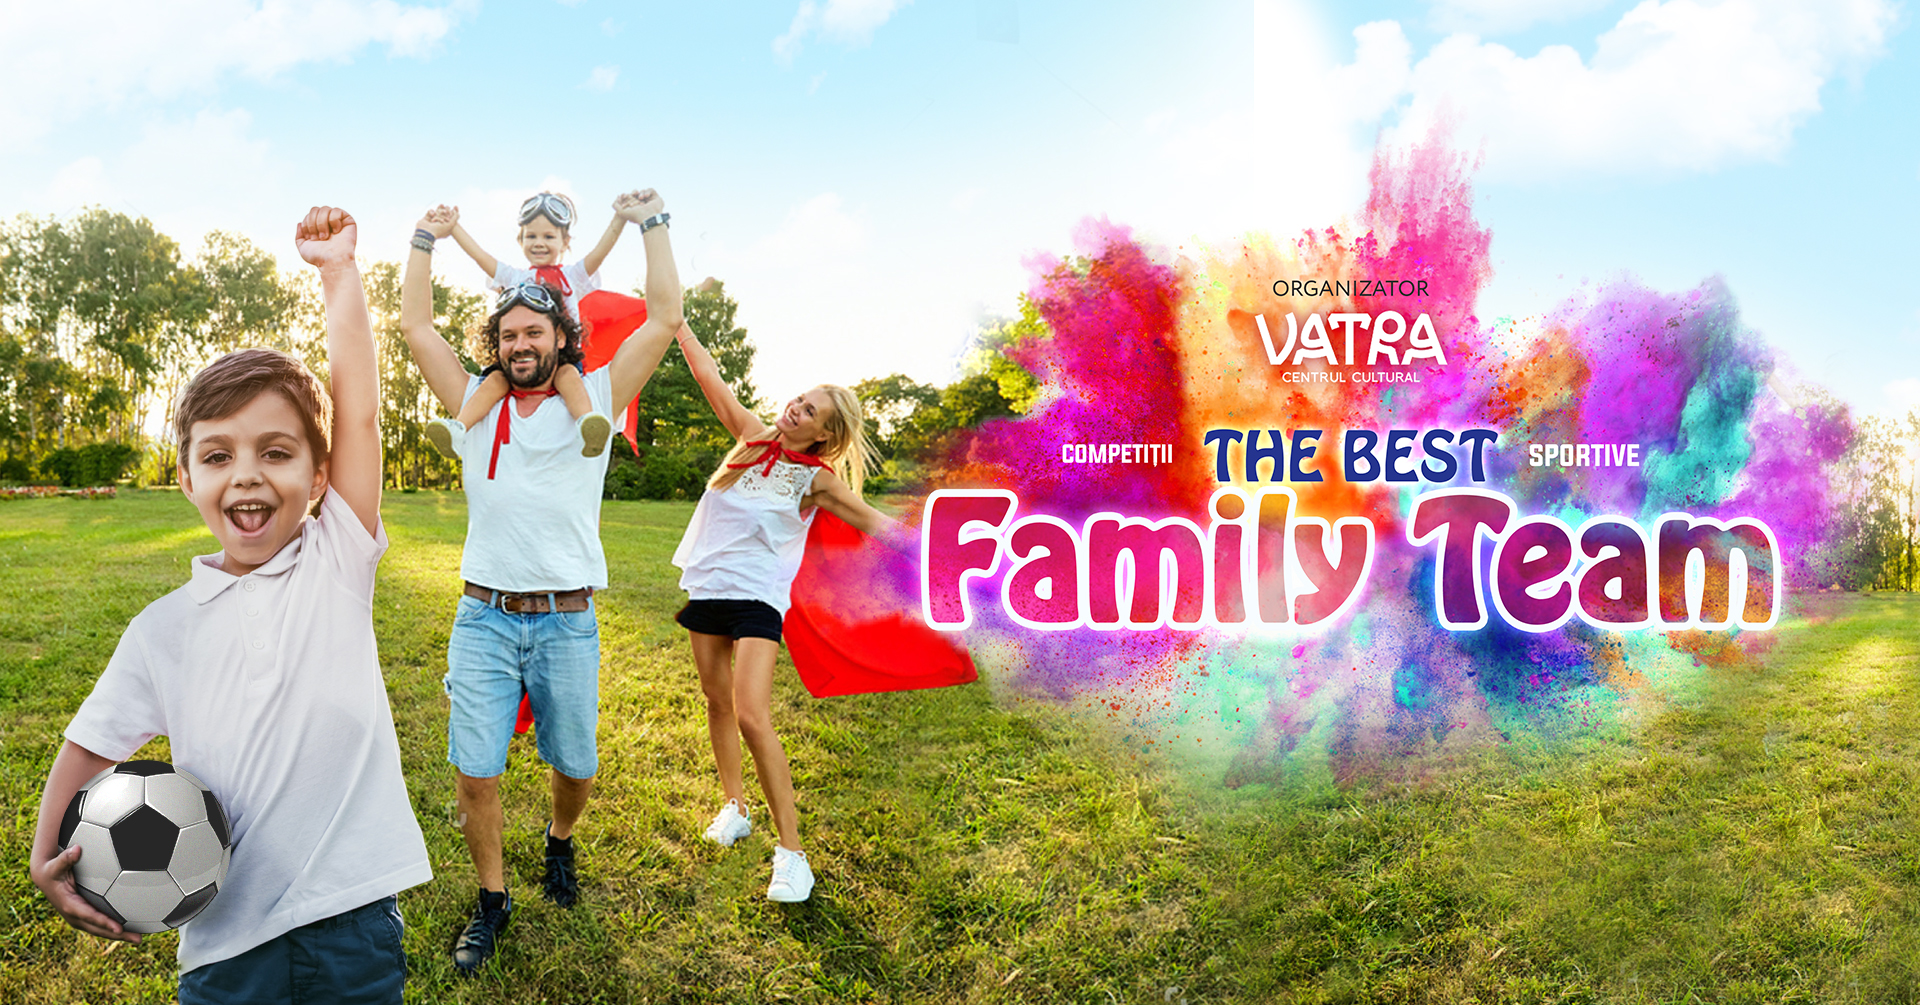 VATRA, complexul VATRA, the best family team,